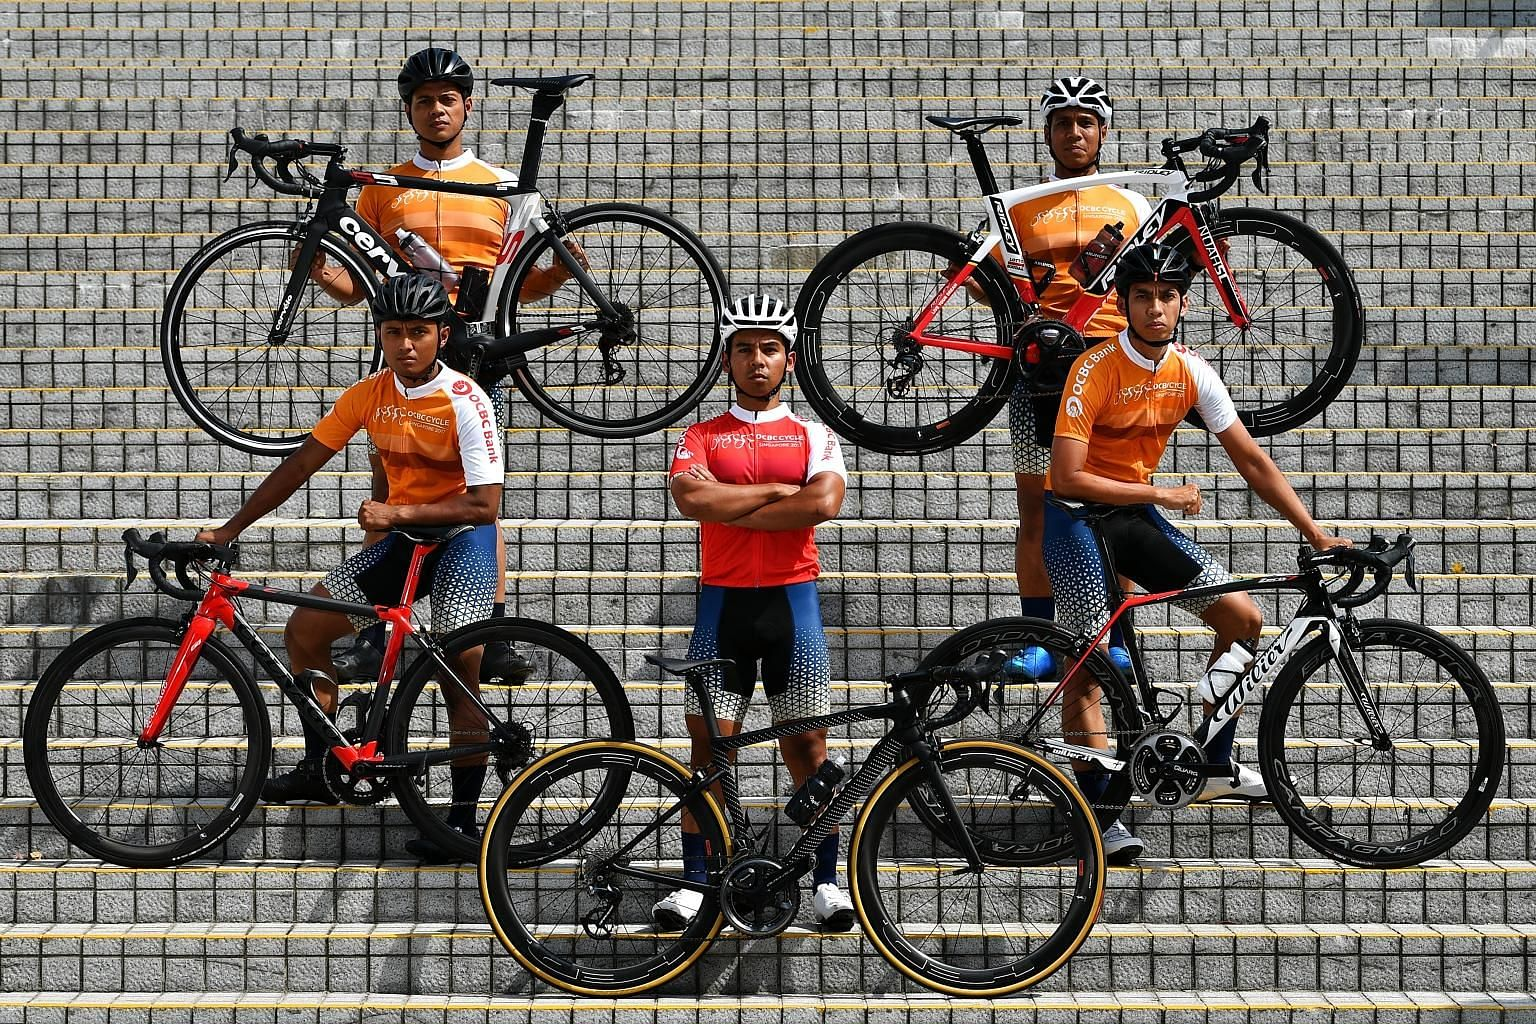 SCDF cycling team leader Ahmad Ridhwan Dahlan (in red) and his team members (clockwise from his right) Yazid Amir, Syed Amir Haziq, Shuhrawardi Hussain and Suhardi Sa'ad train twice to thrice a week, cycling about 40km each time. They also cycle some